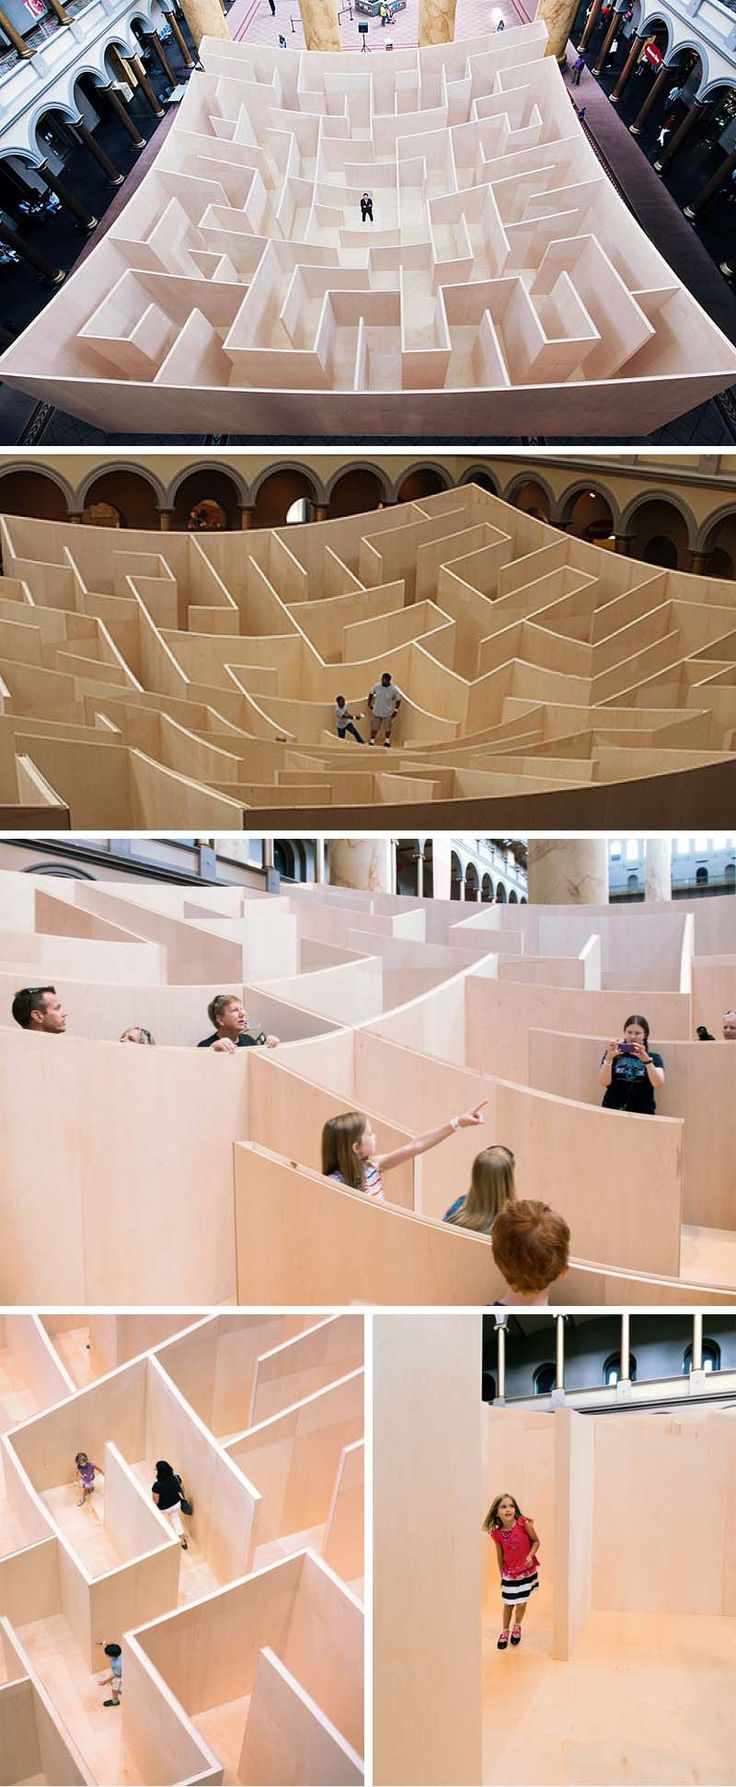 Big Maze Bjarke Ingels Group BIG In National Building Museum WAshington DC